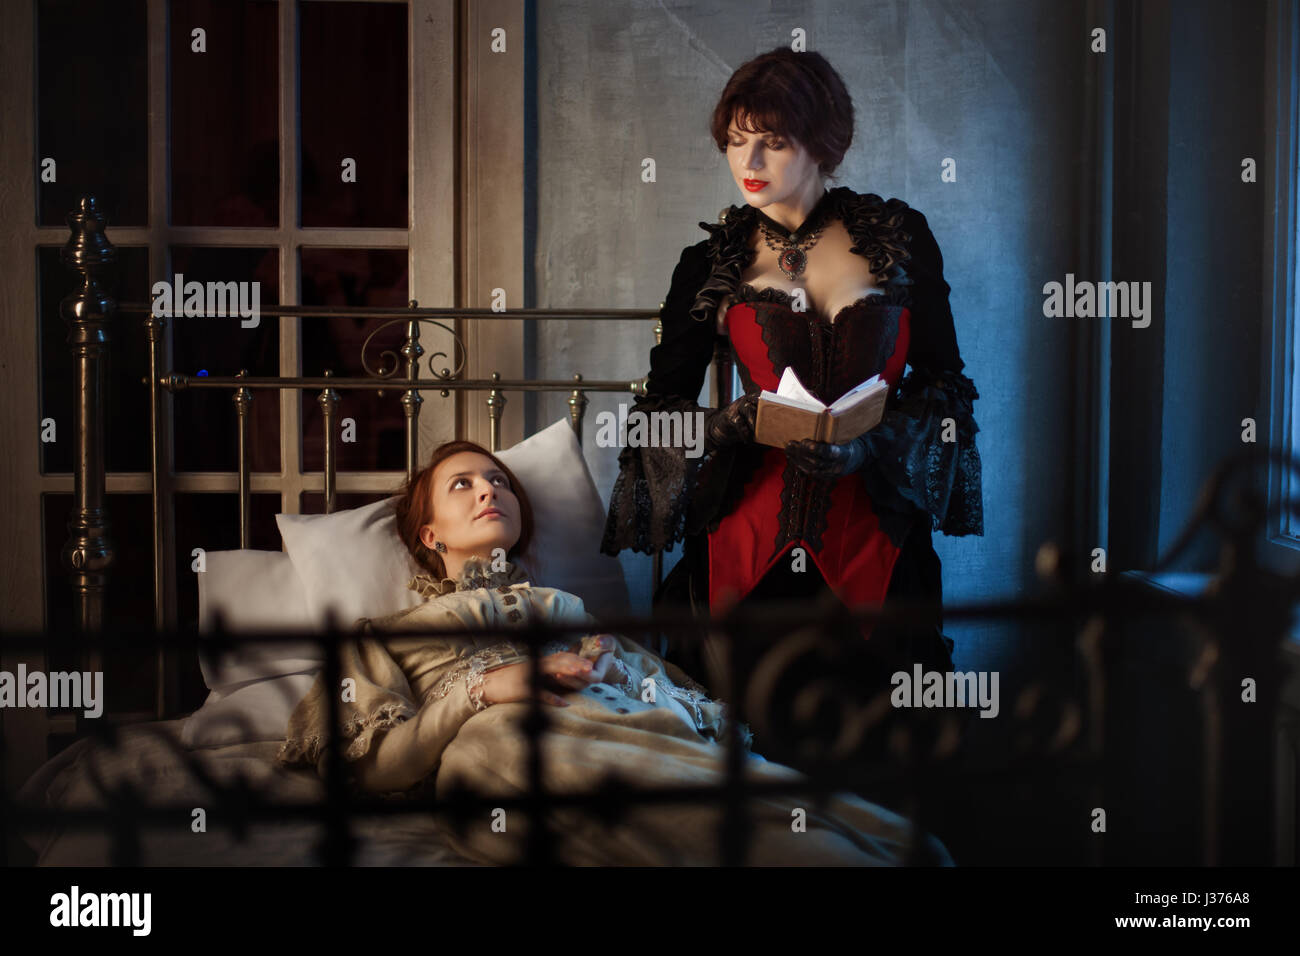 Sick woman lying on a bed next to another woman reading a book, in the Gothic style retro. - Stock Image